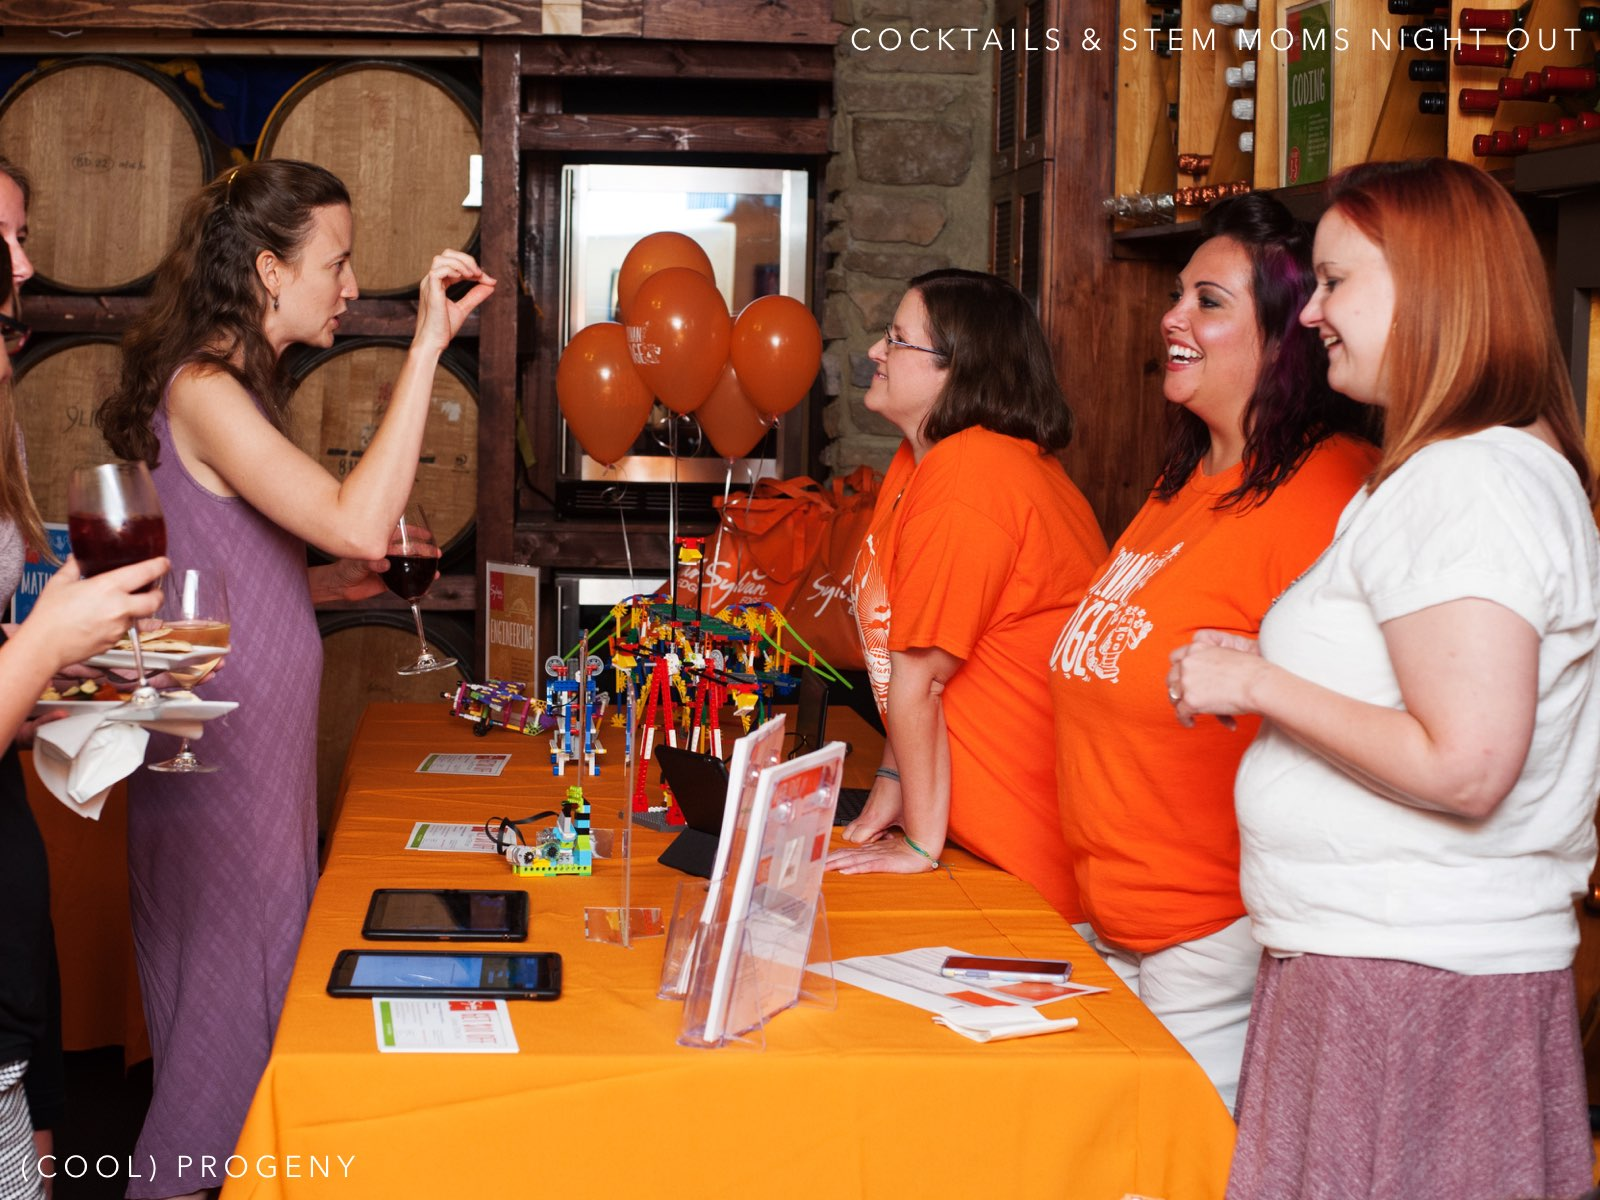 Cocktails and STEM Moms Night Out - (cool) progeny